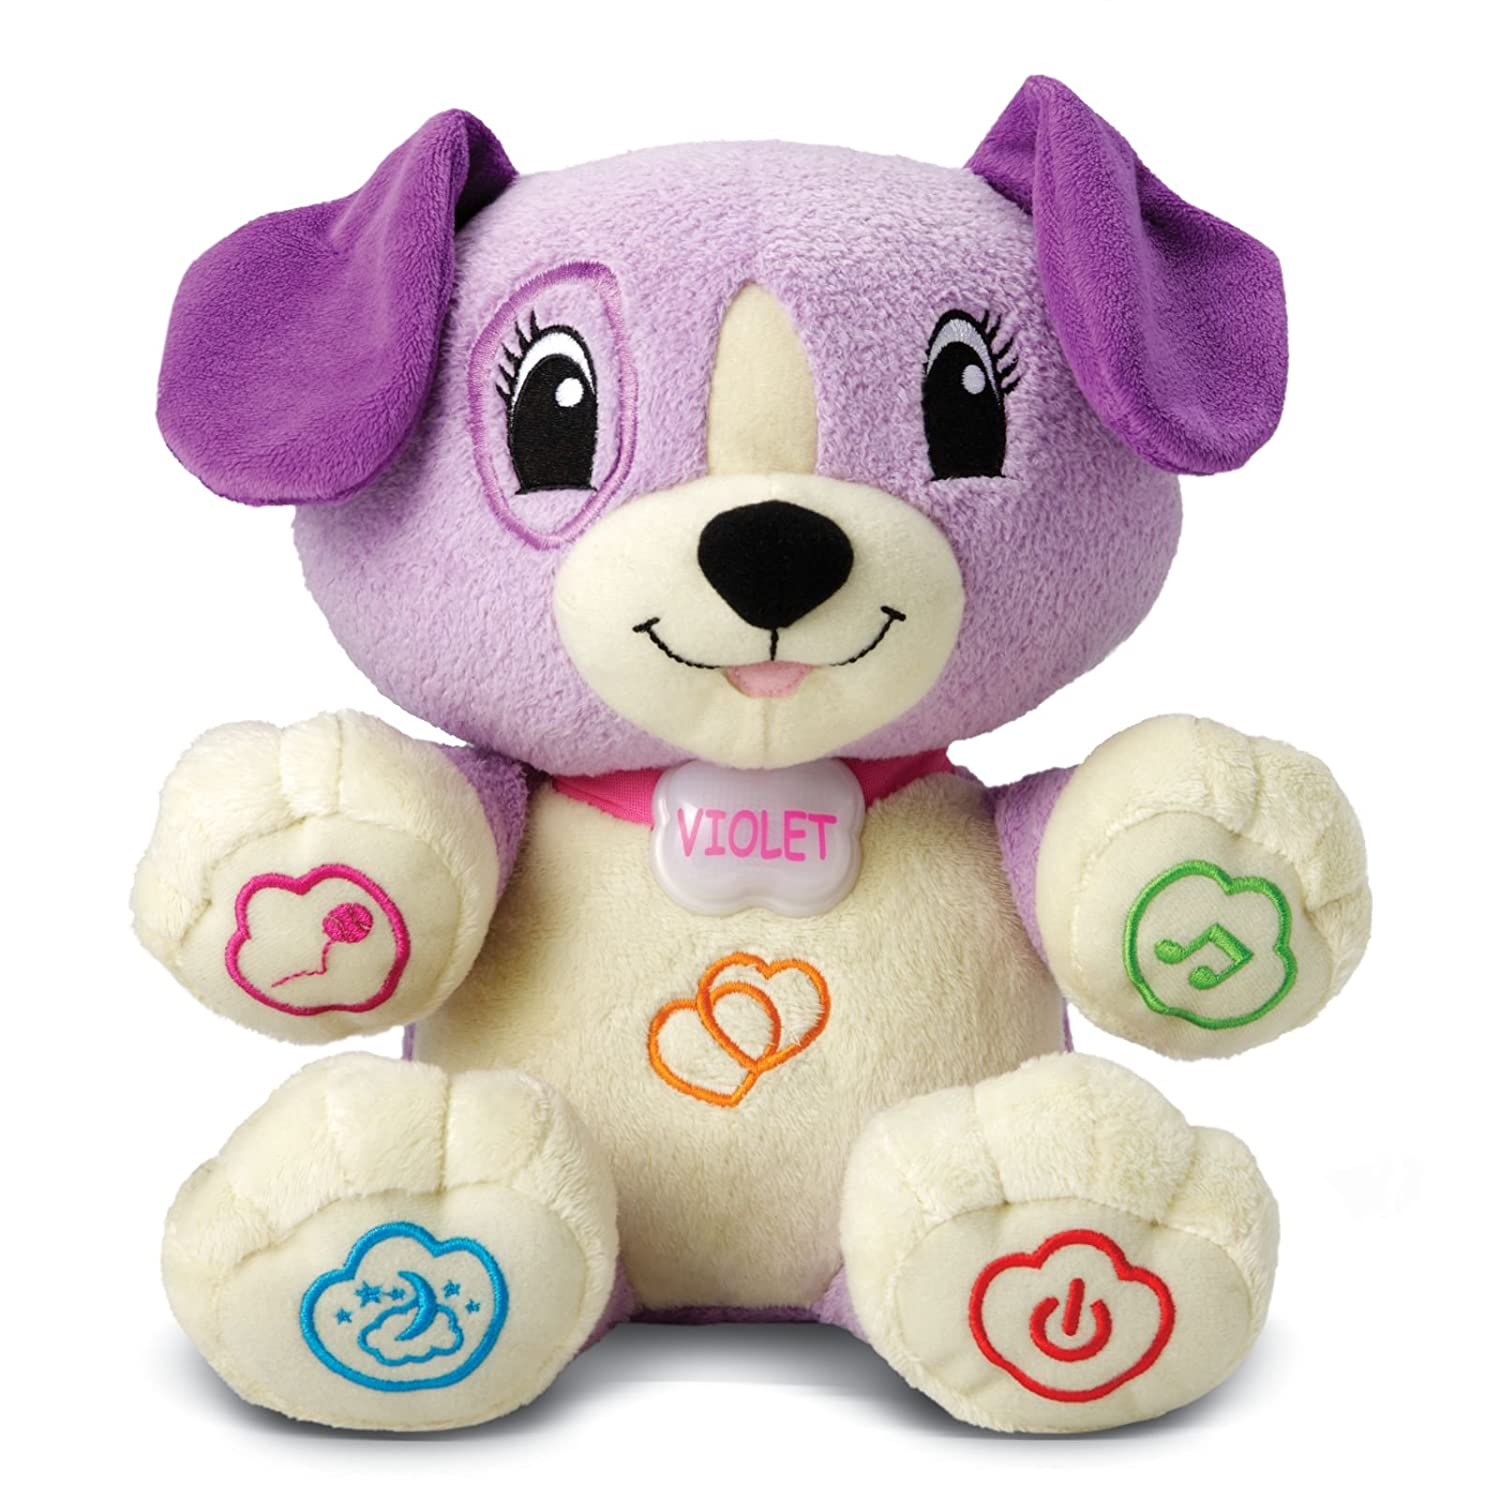 Toys For Girls 1 3 : Best gifts for year old girls in itsy bitsy fun